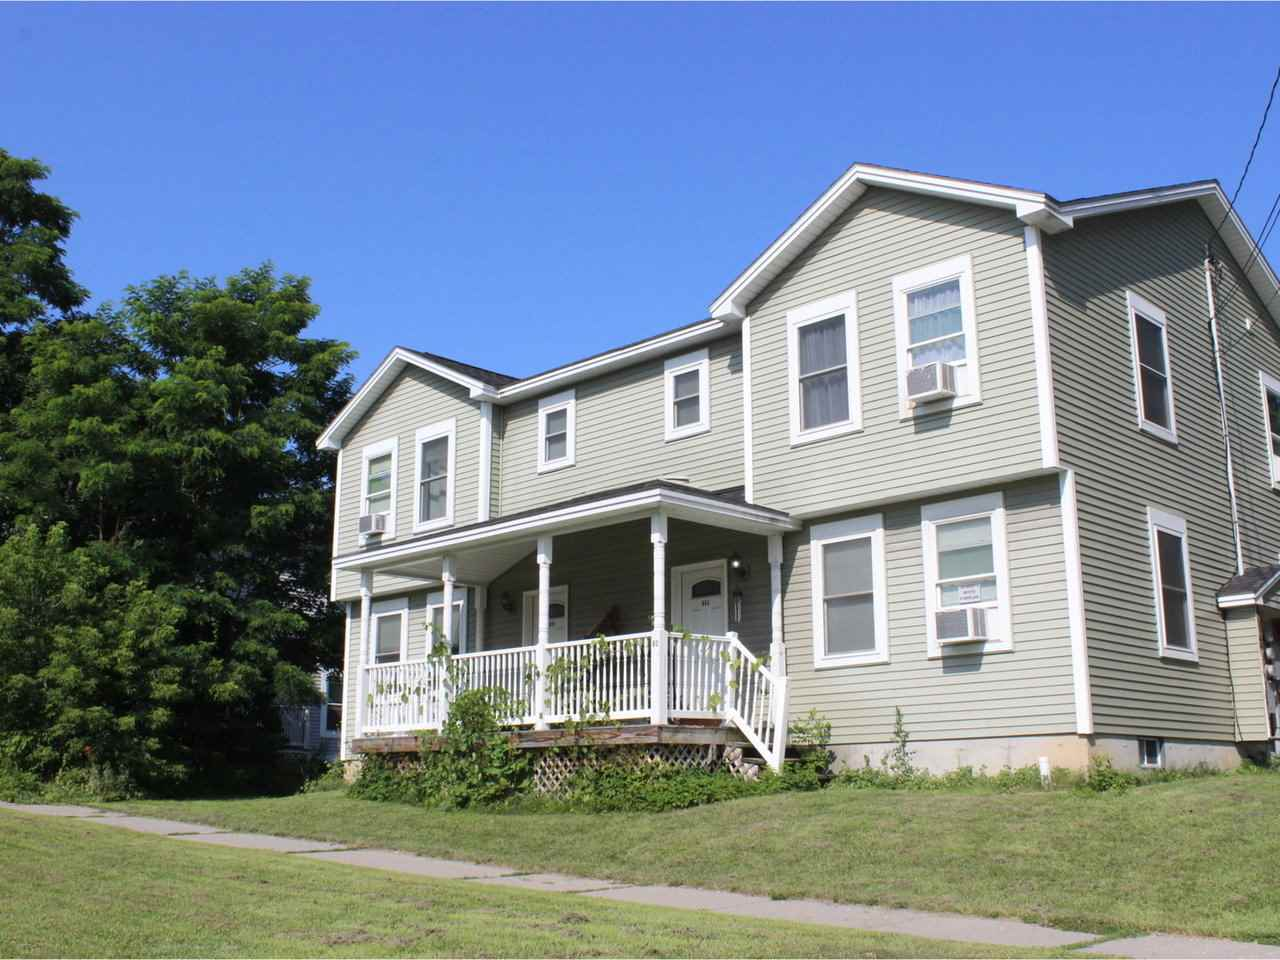 Built in 2013, this duplex is a GREAT opportunity to live in one side and let your tenant in the other side pay your mortgage. Three bright bedrooms on each side, beautiful hardwood, with ample space and storage. Convenient location, easy to get to town with all that Vergennes has to offer. Town water and sewer, with a large four car garage. Solid investment!